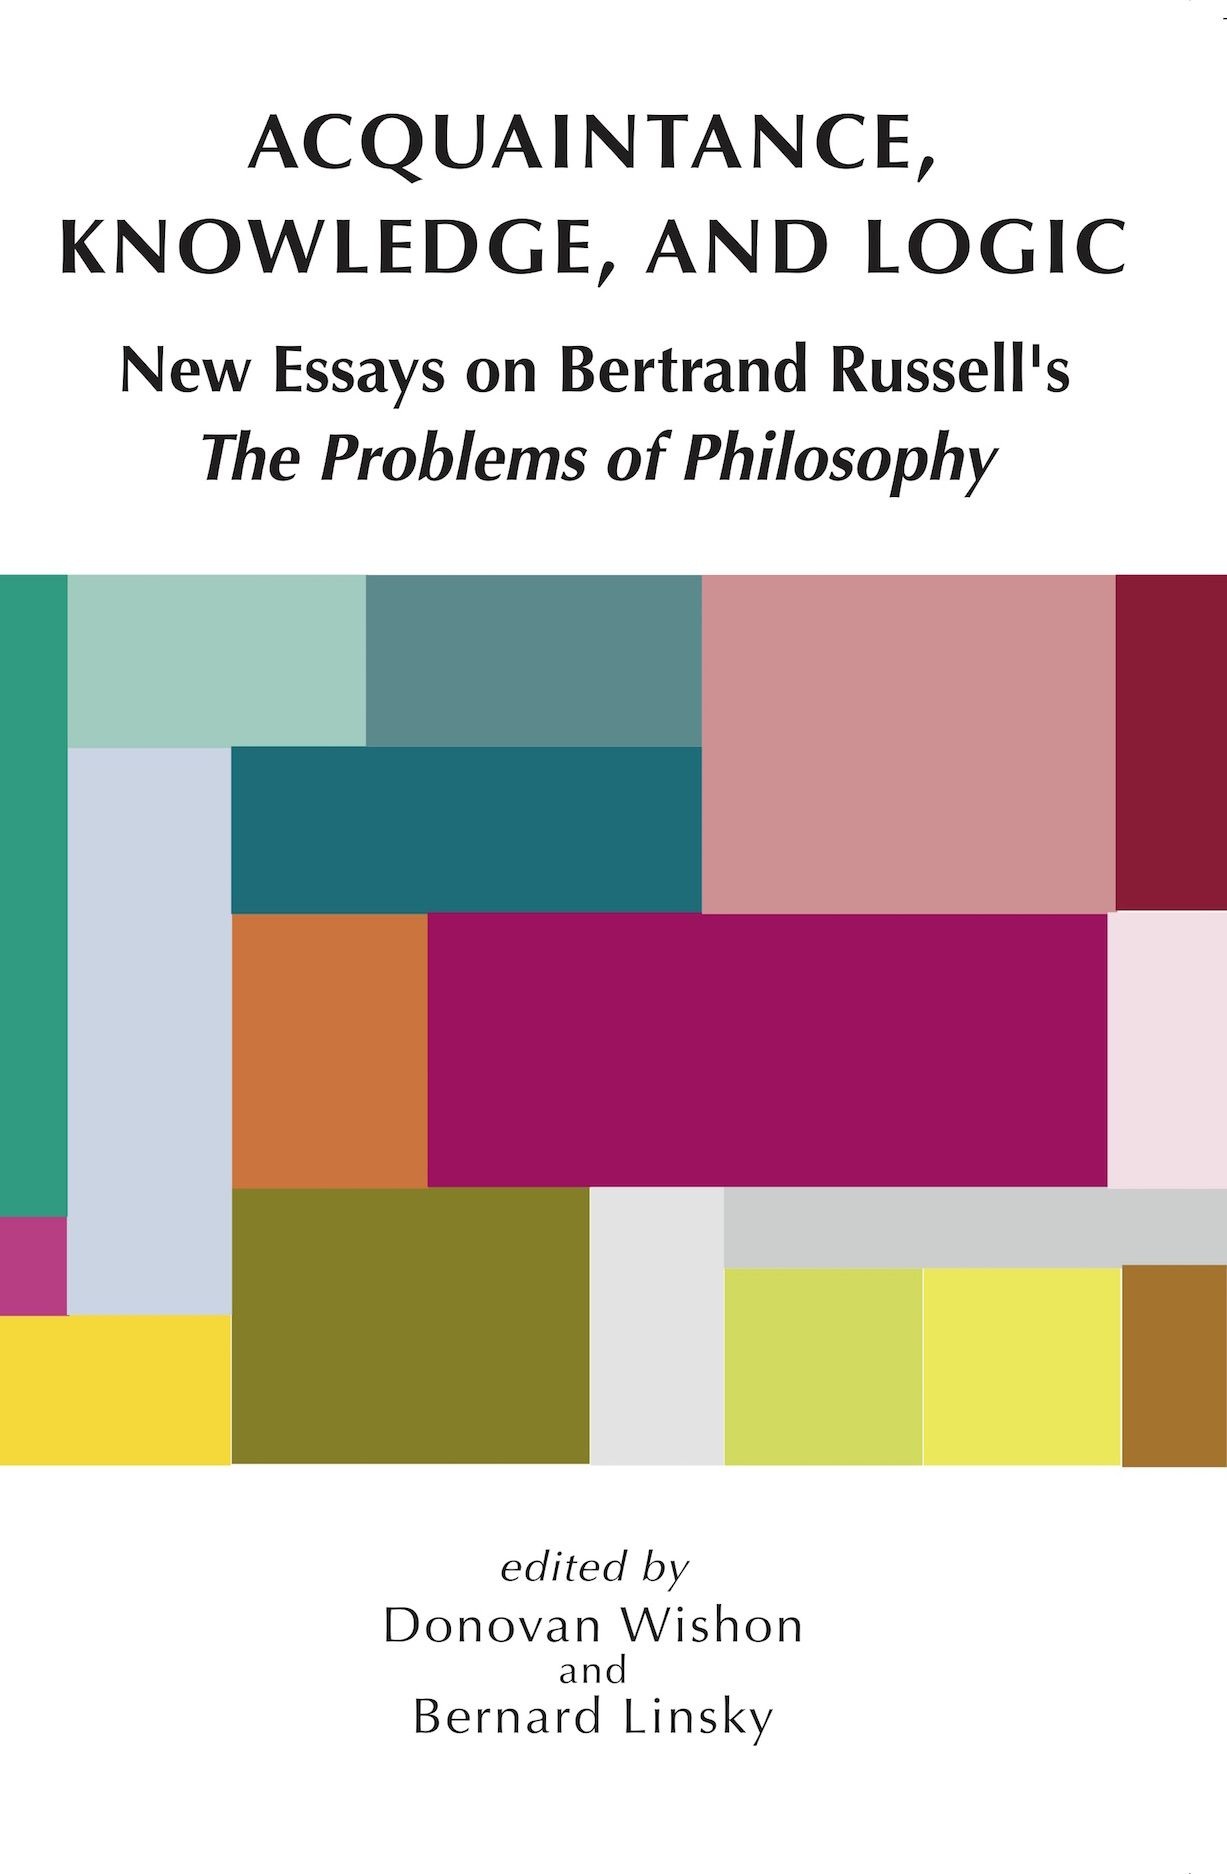 Acquaintance, Knowledge, and Logic: New Essays on Bertrand Russell's